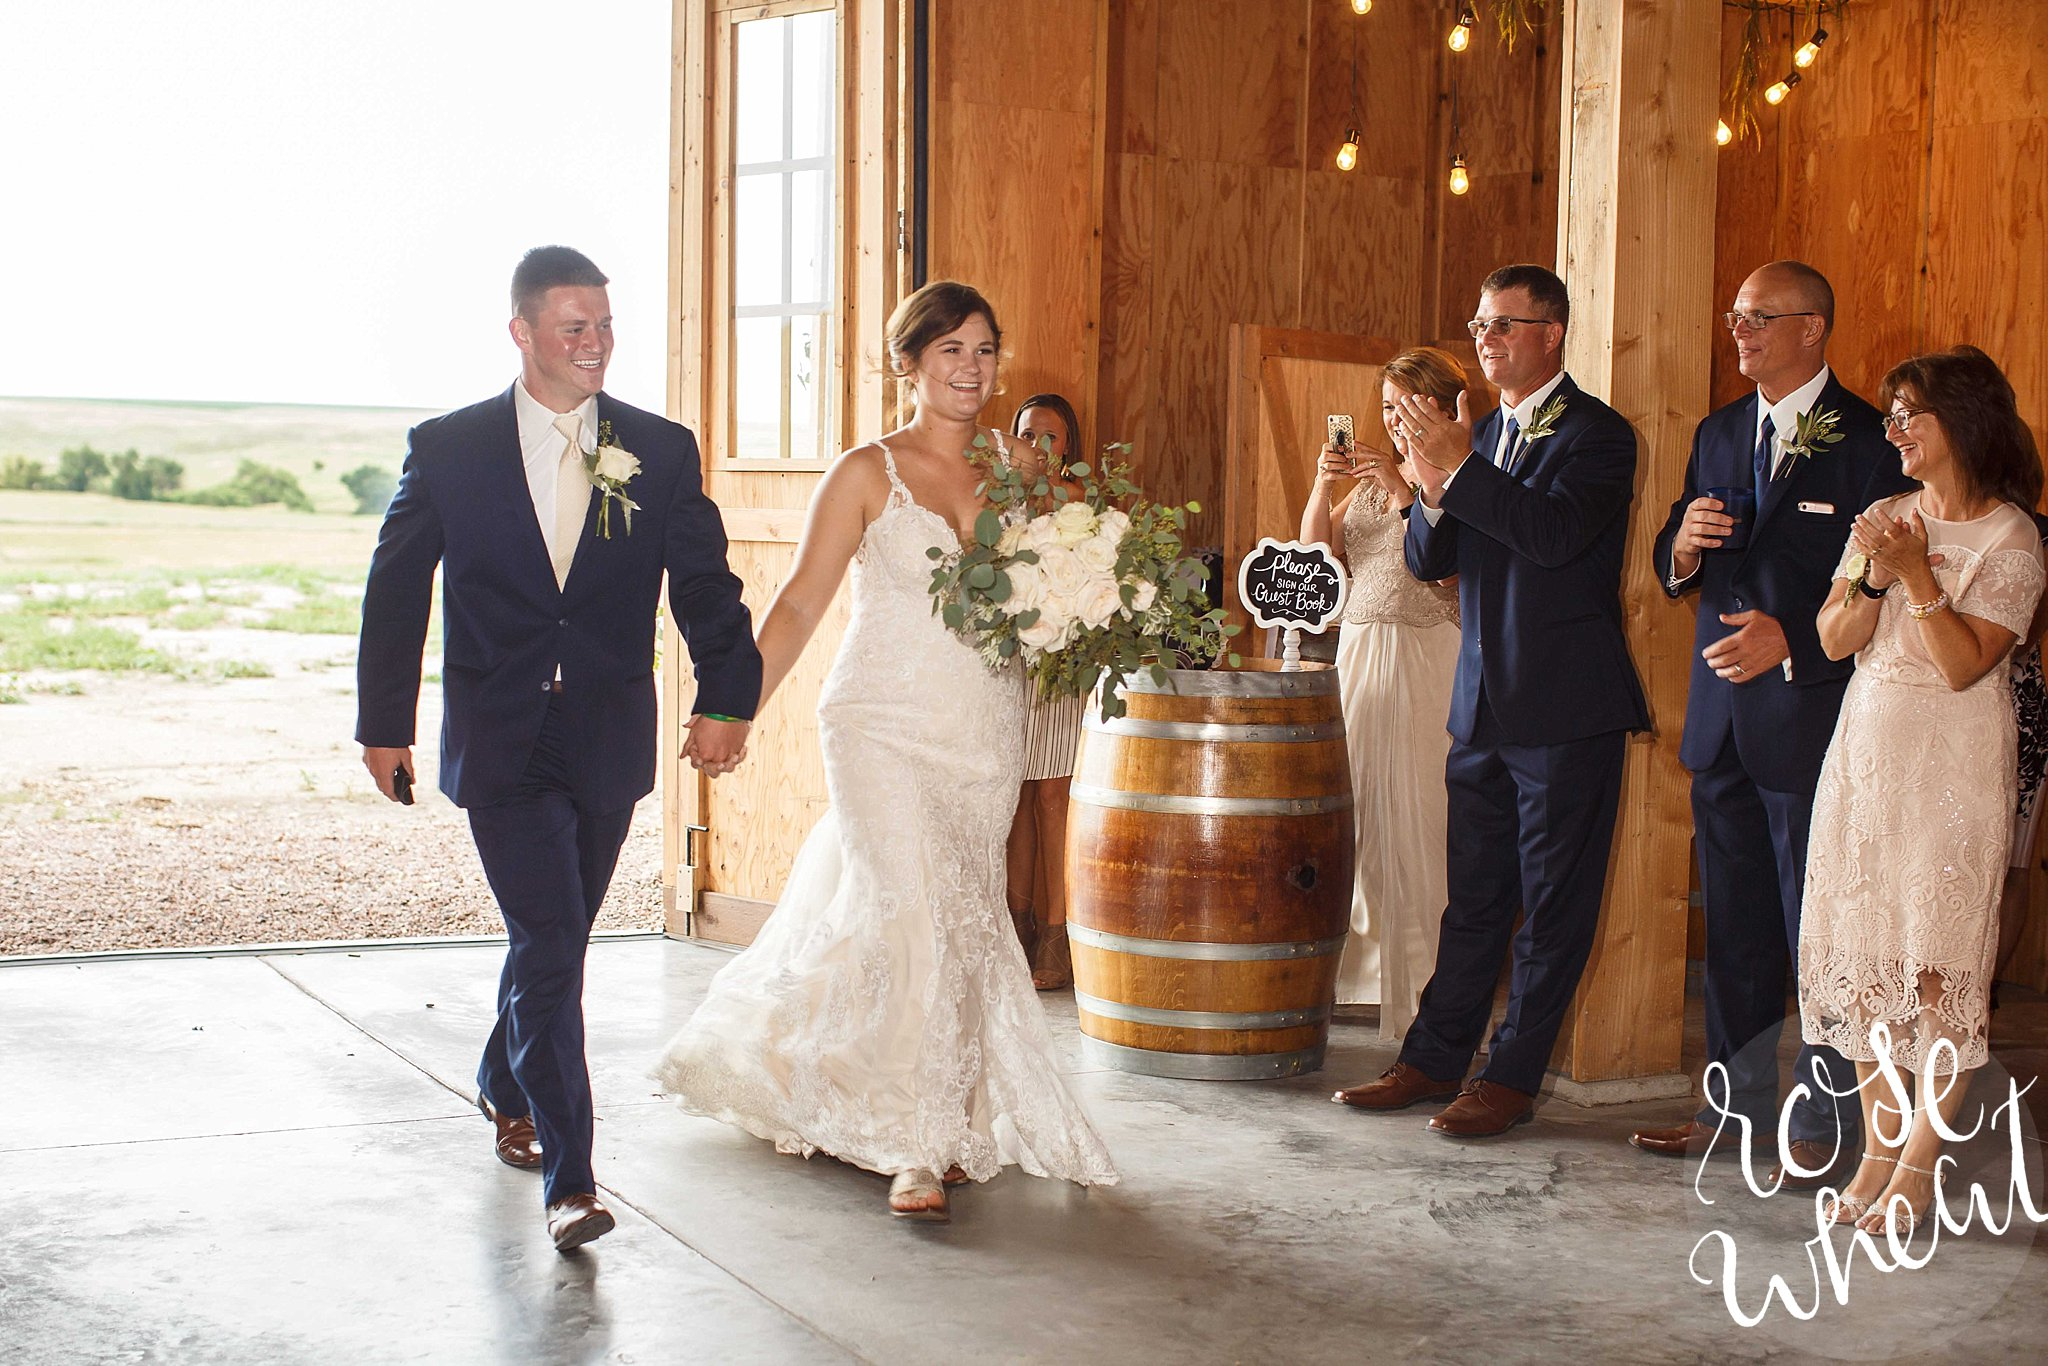 Bellwether_Barn_Wedding-032.JPG